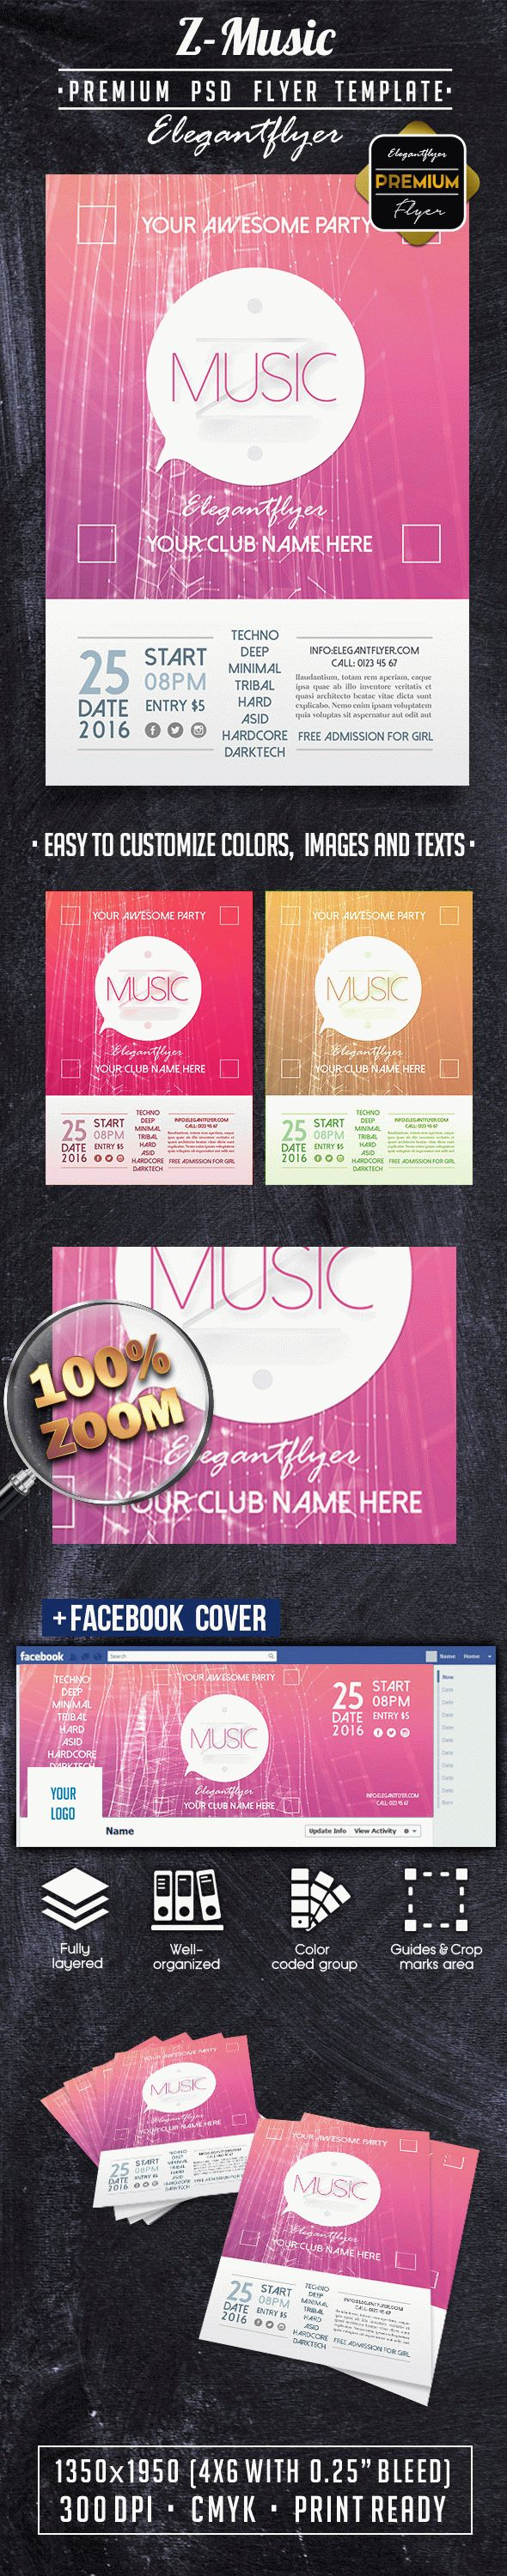 Z-Music PREMIUM Flyer PSD Template